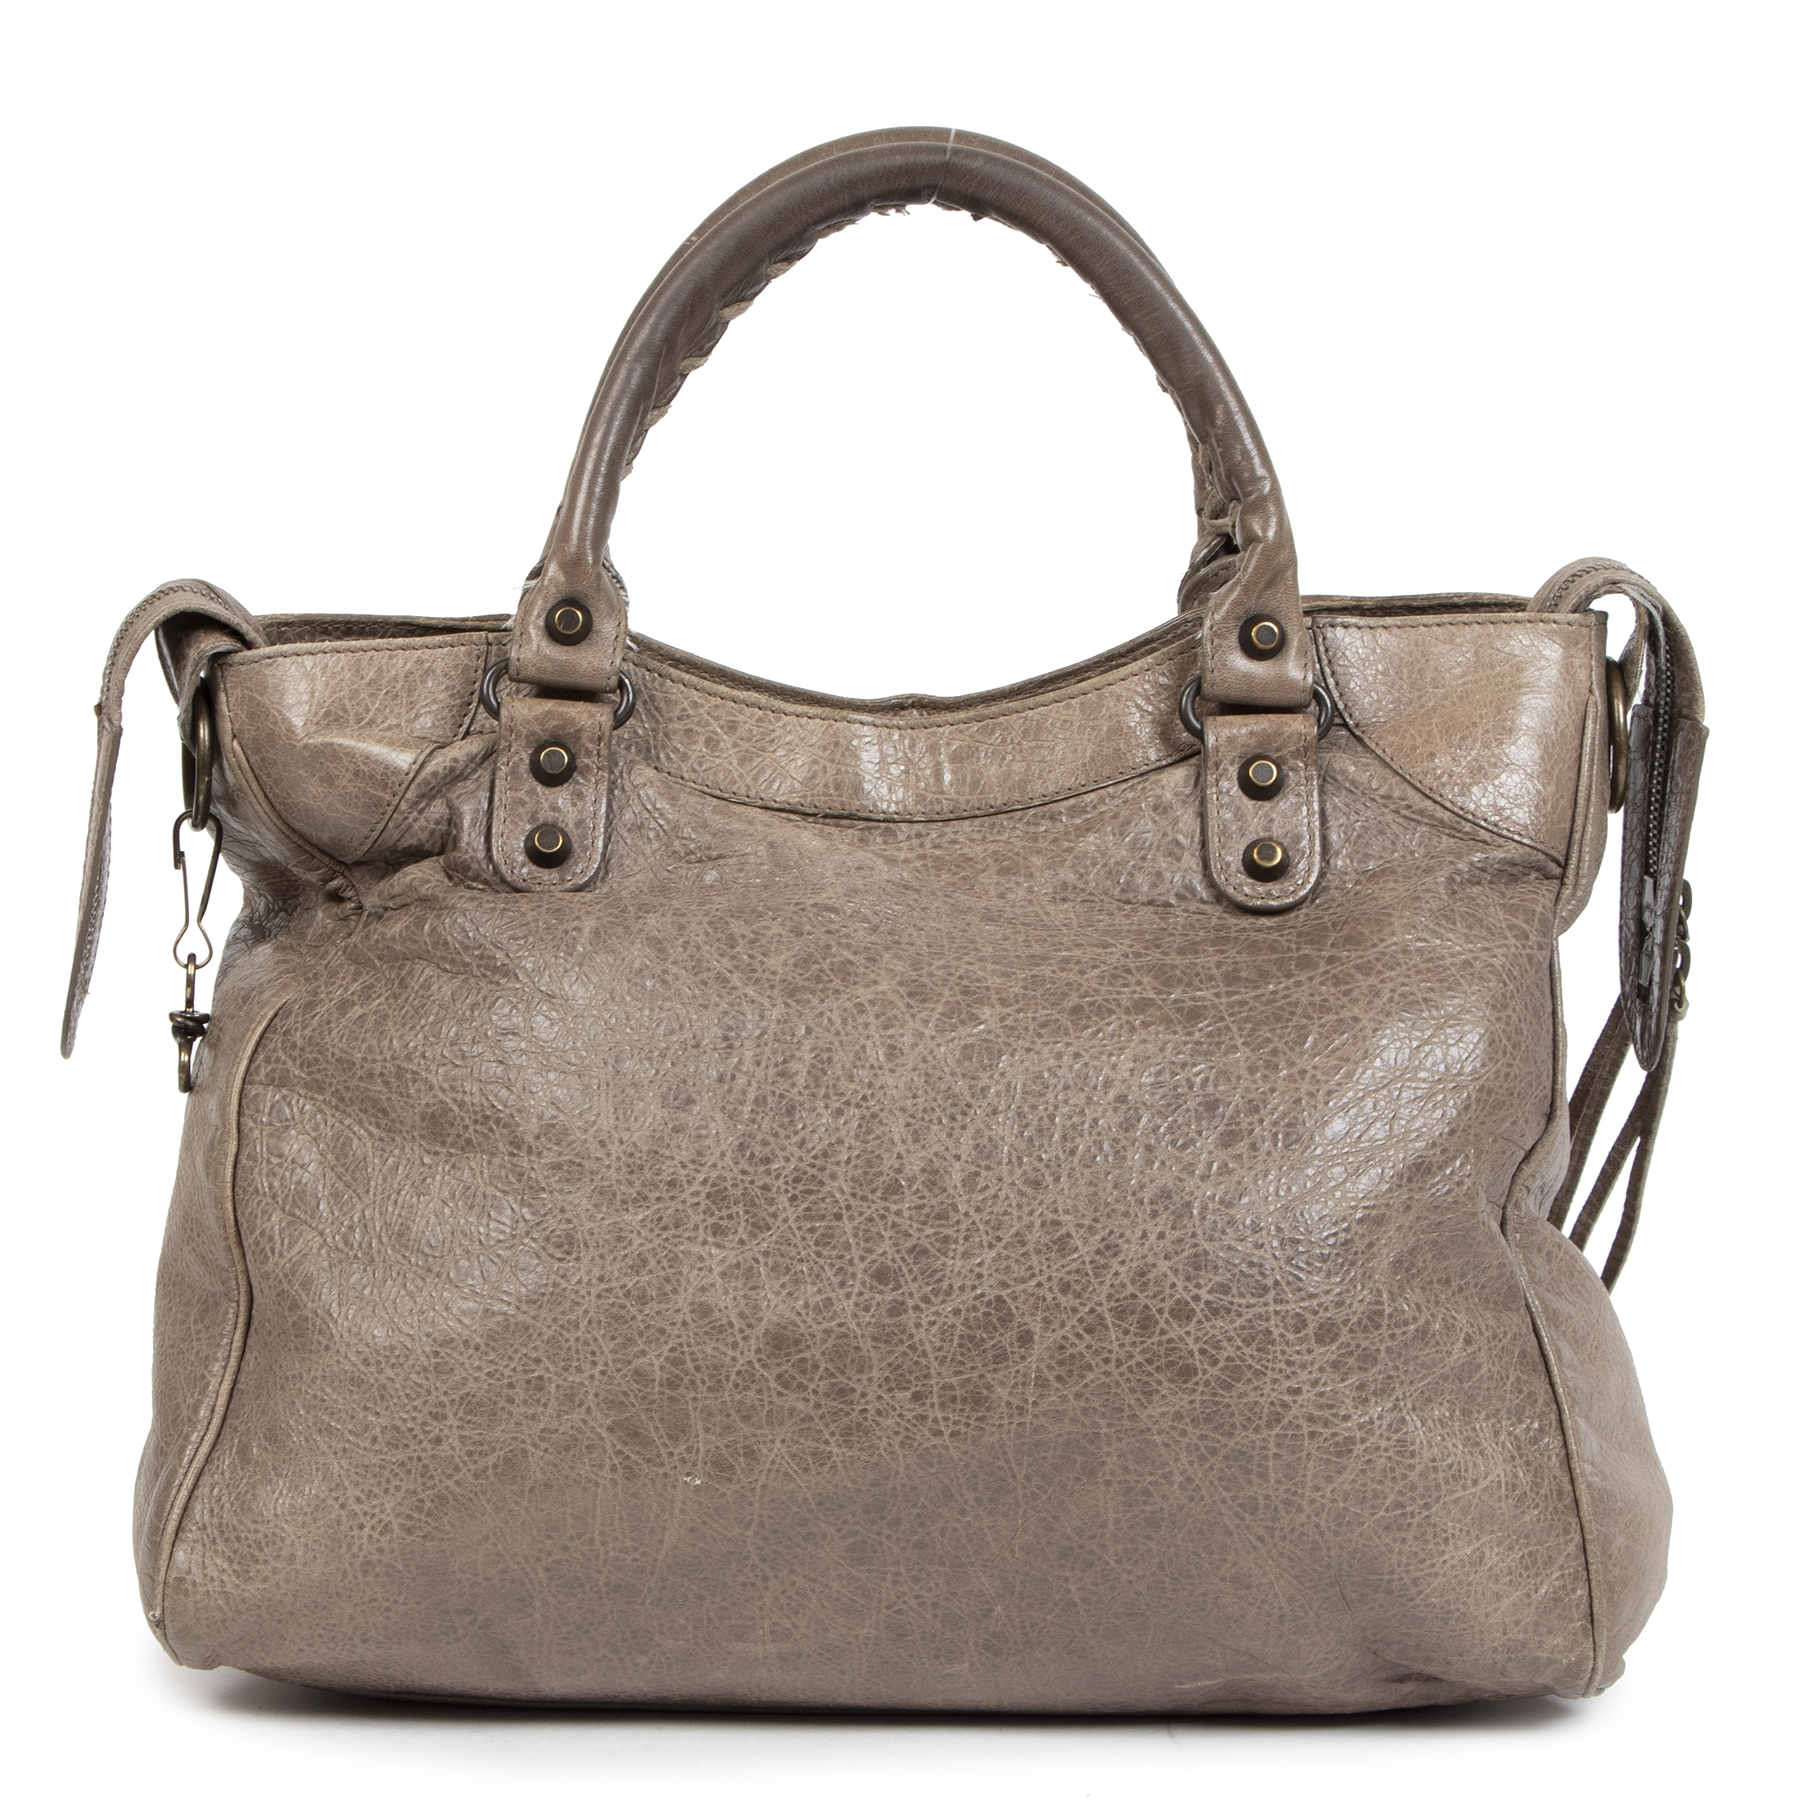 Buy secondhand Balenciaga Vélo leather bags at the right price at LabelLOV Antwerp. Shop safe and secure for the best vintage luxury items at LabelLOV